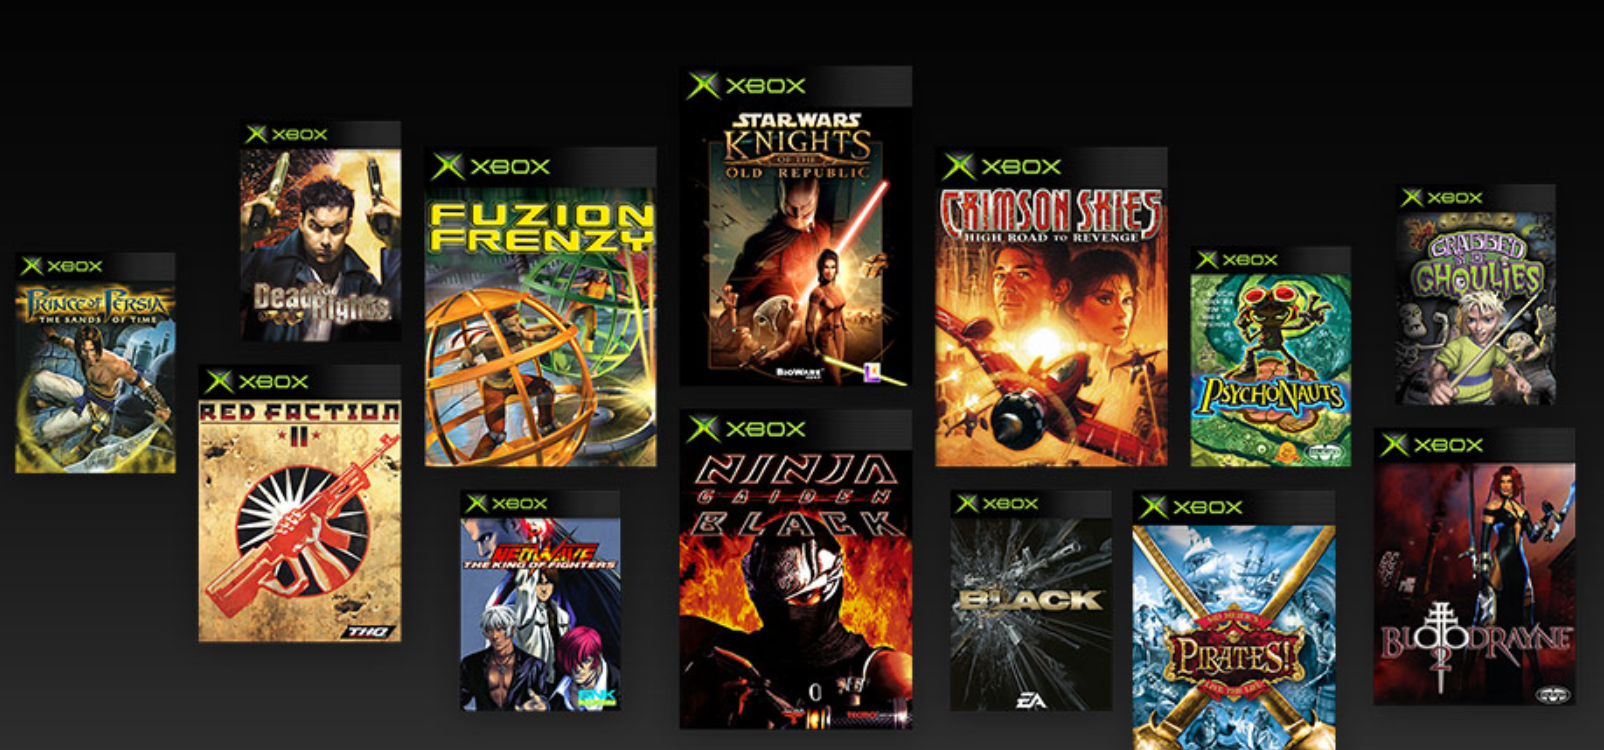 backwards compatible archives - gameranx